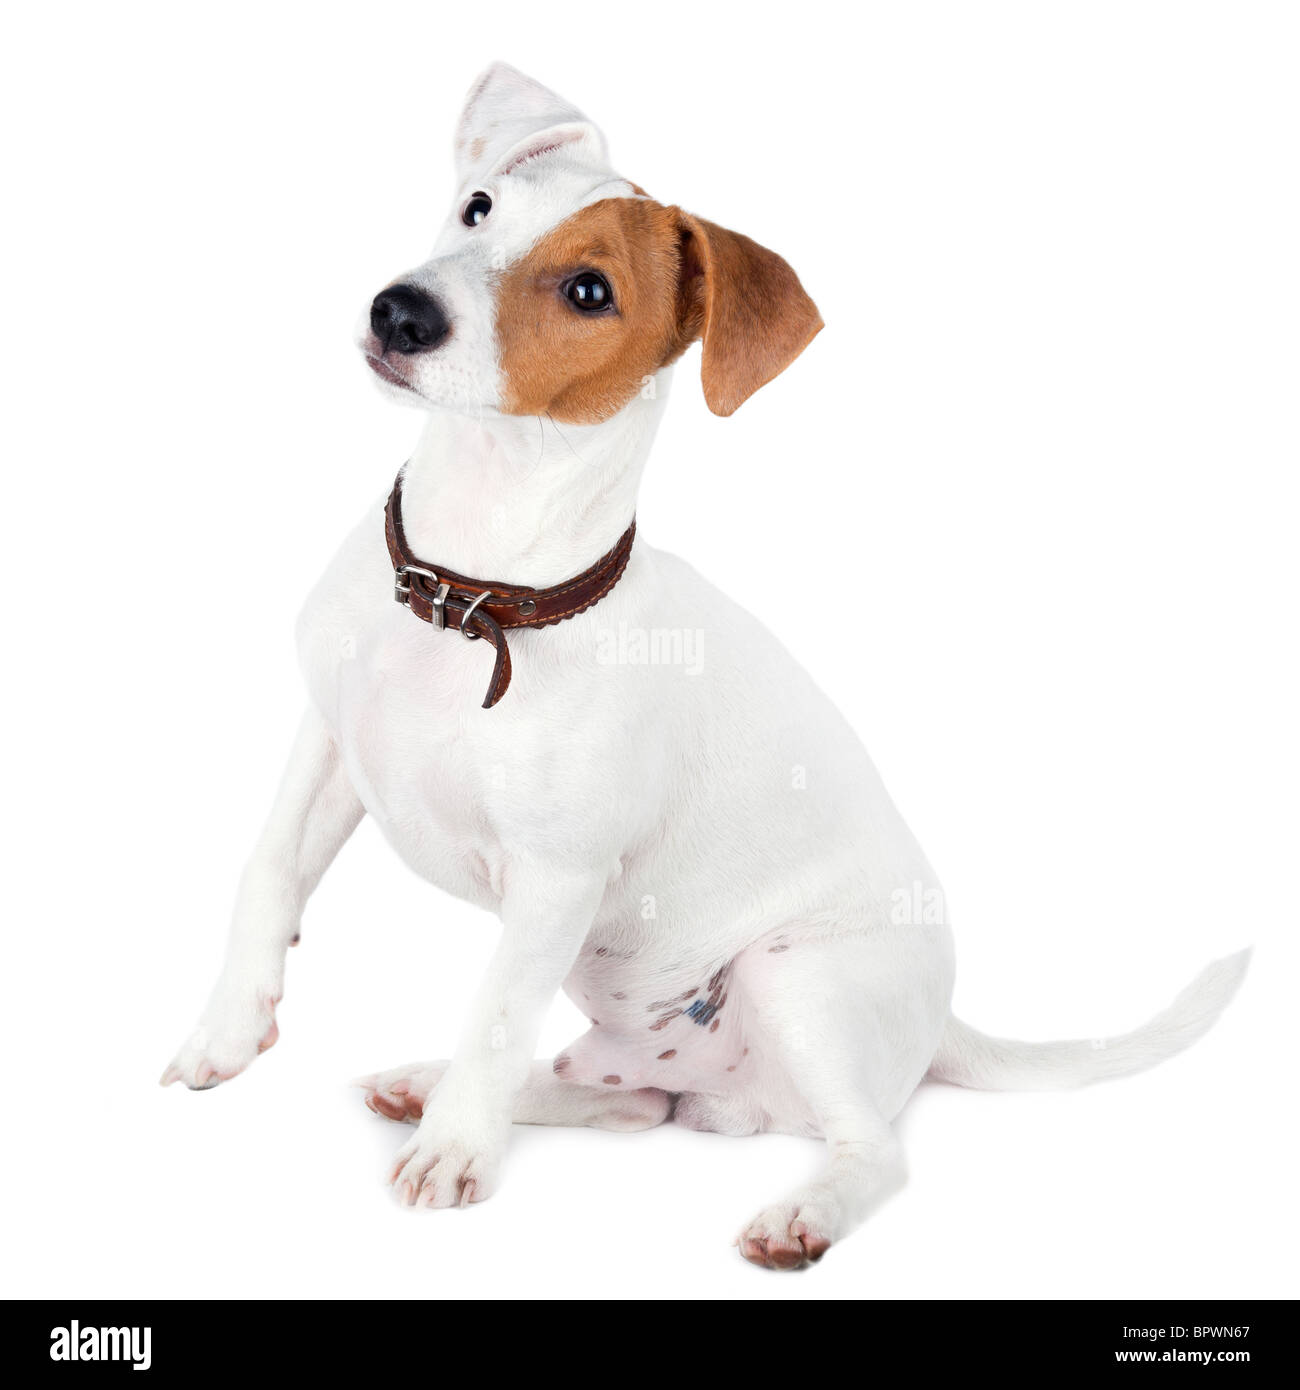 Puppy of a dog in studio against a white background. A Jack Russell terrier is a dog with a high level of energy. - Stock Image